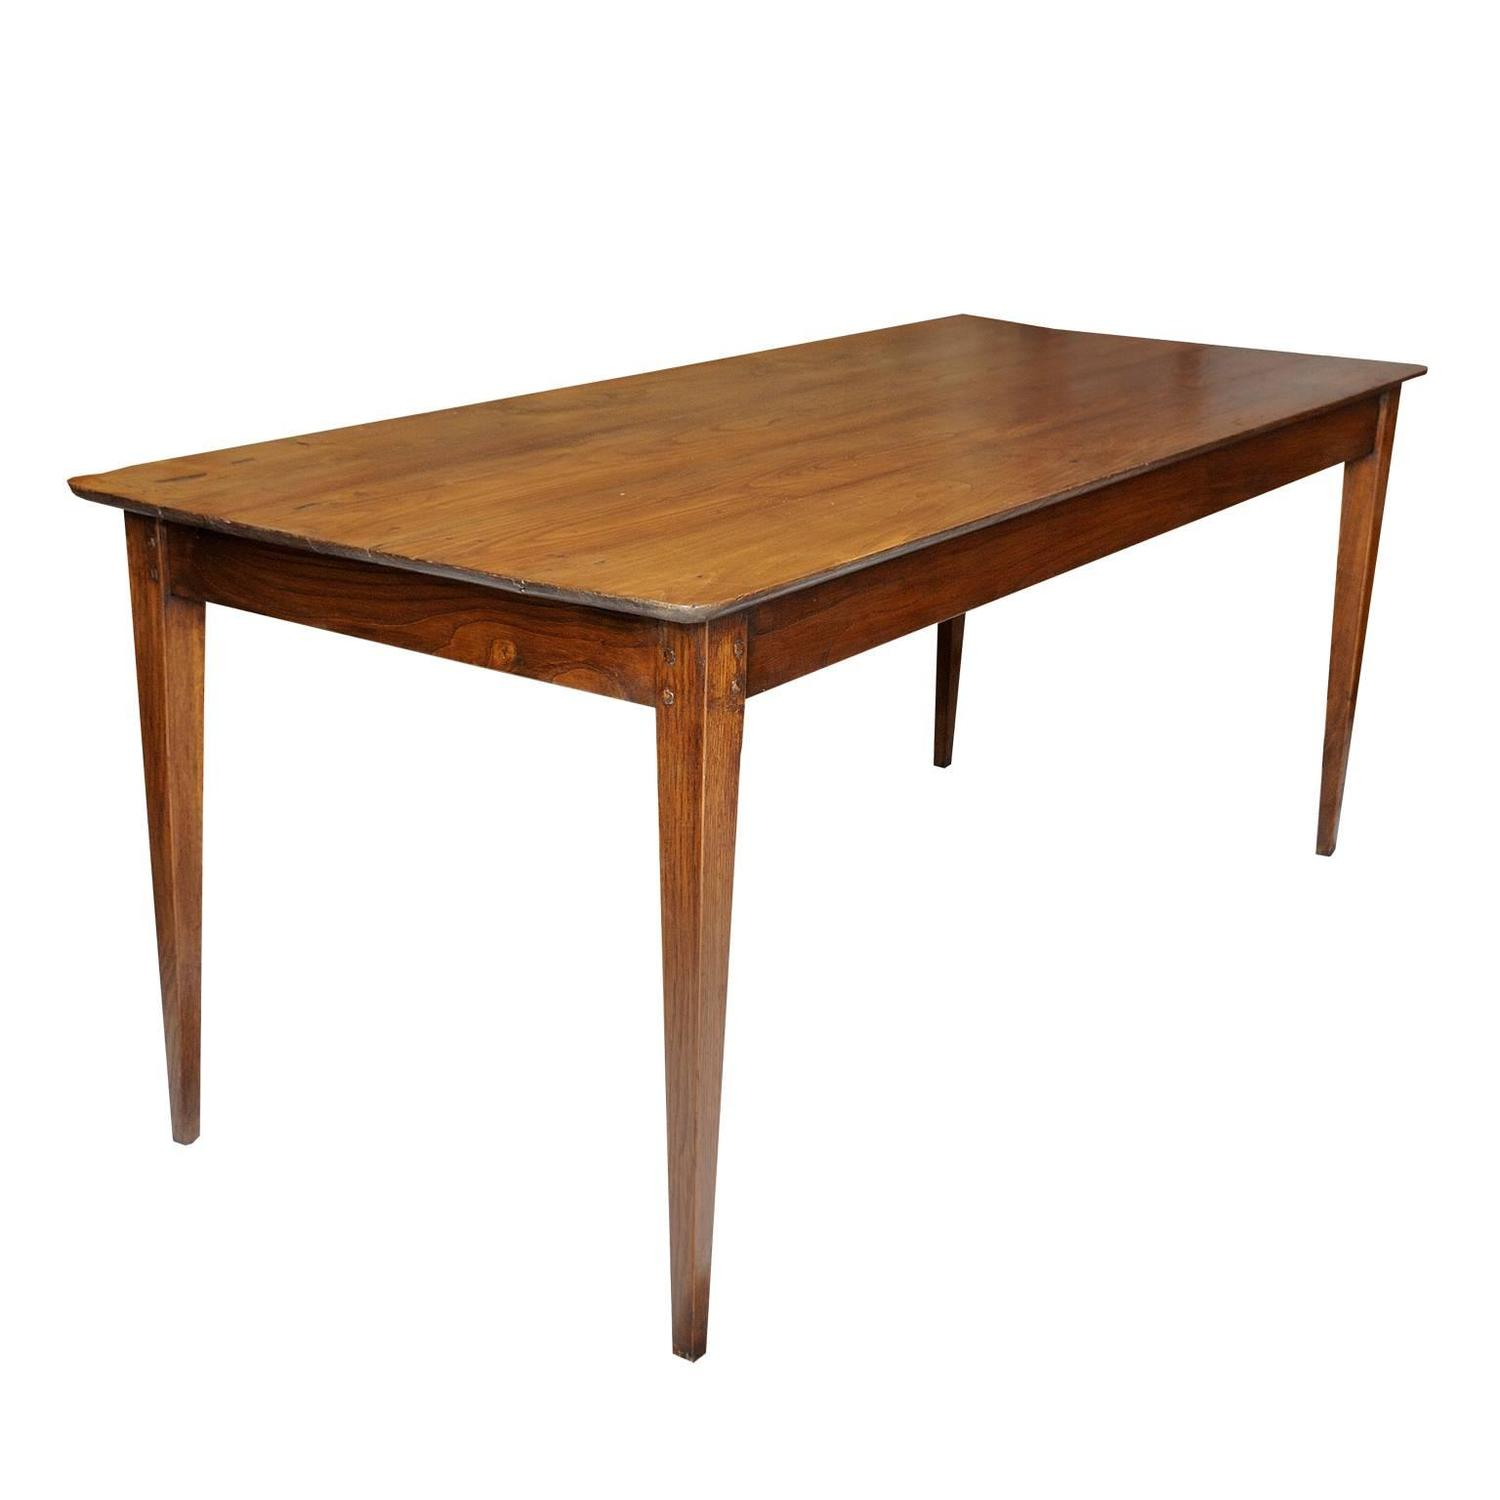 French 19th Century Chestnut Provincial Farmhouse Table circa 1820 For Sale